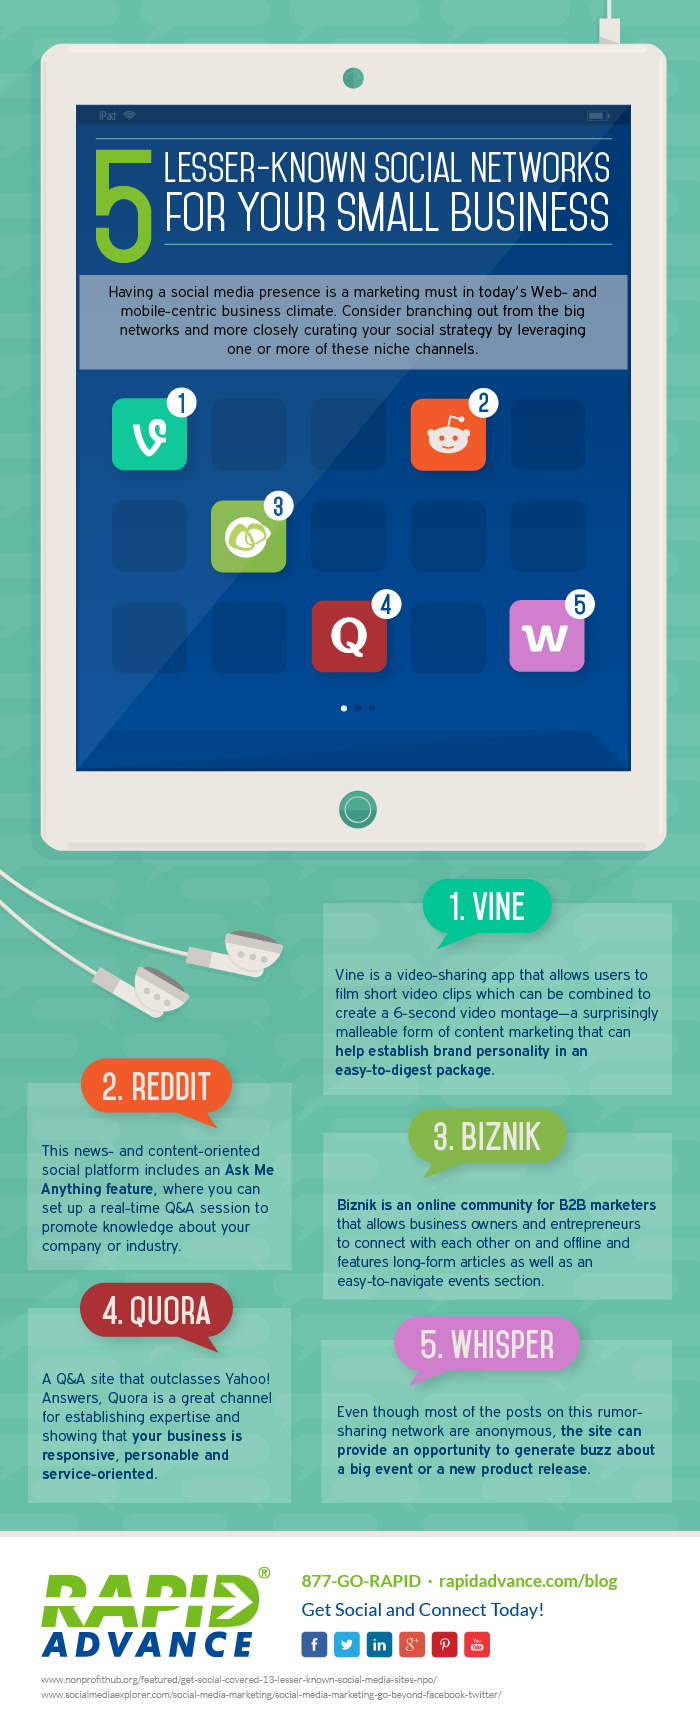 5 Lesser-known #SocialMedia Platfroms For Your Small Business - #infographic